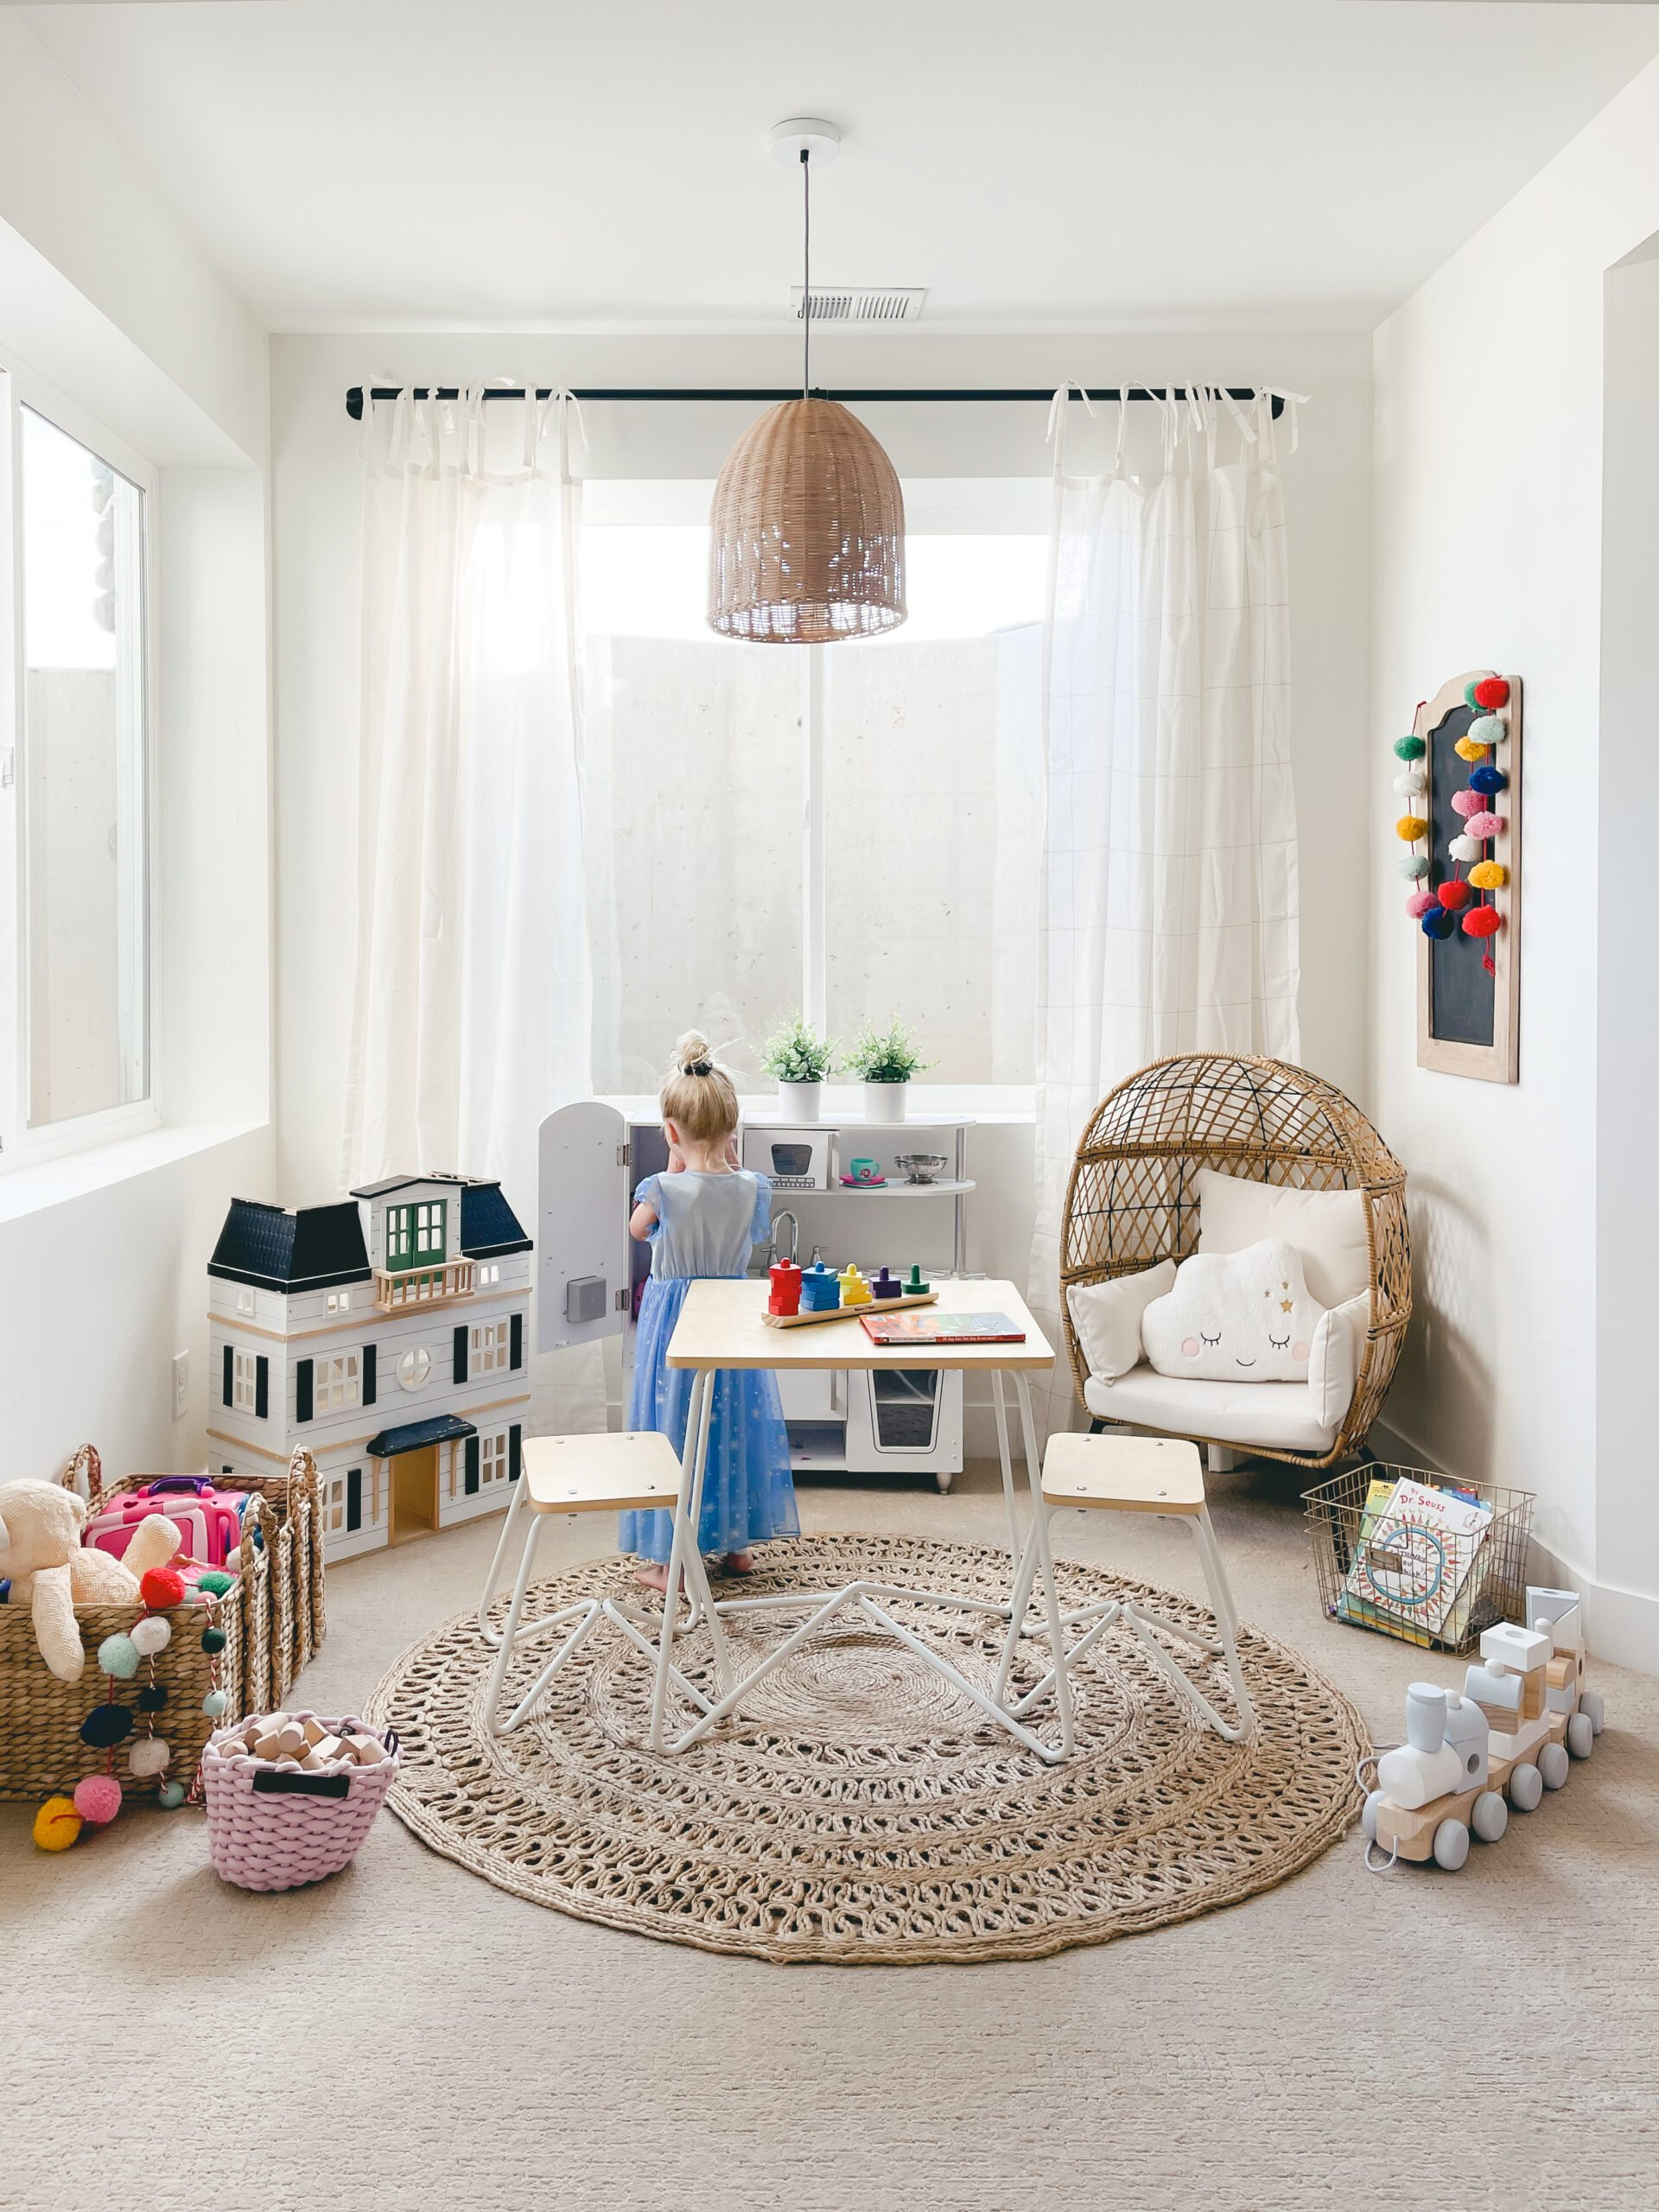 Quick Playroom Makeover! Simple and fun playroom ideas for kids.